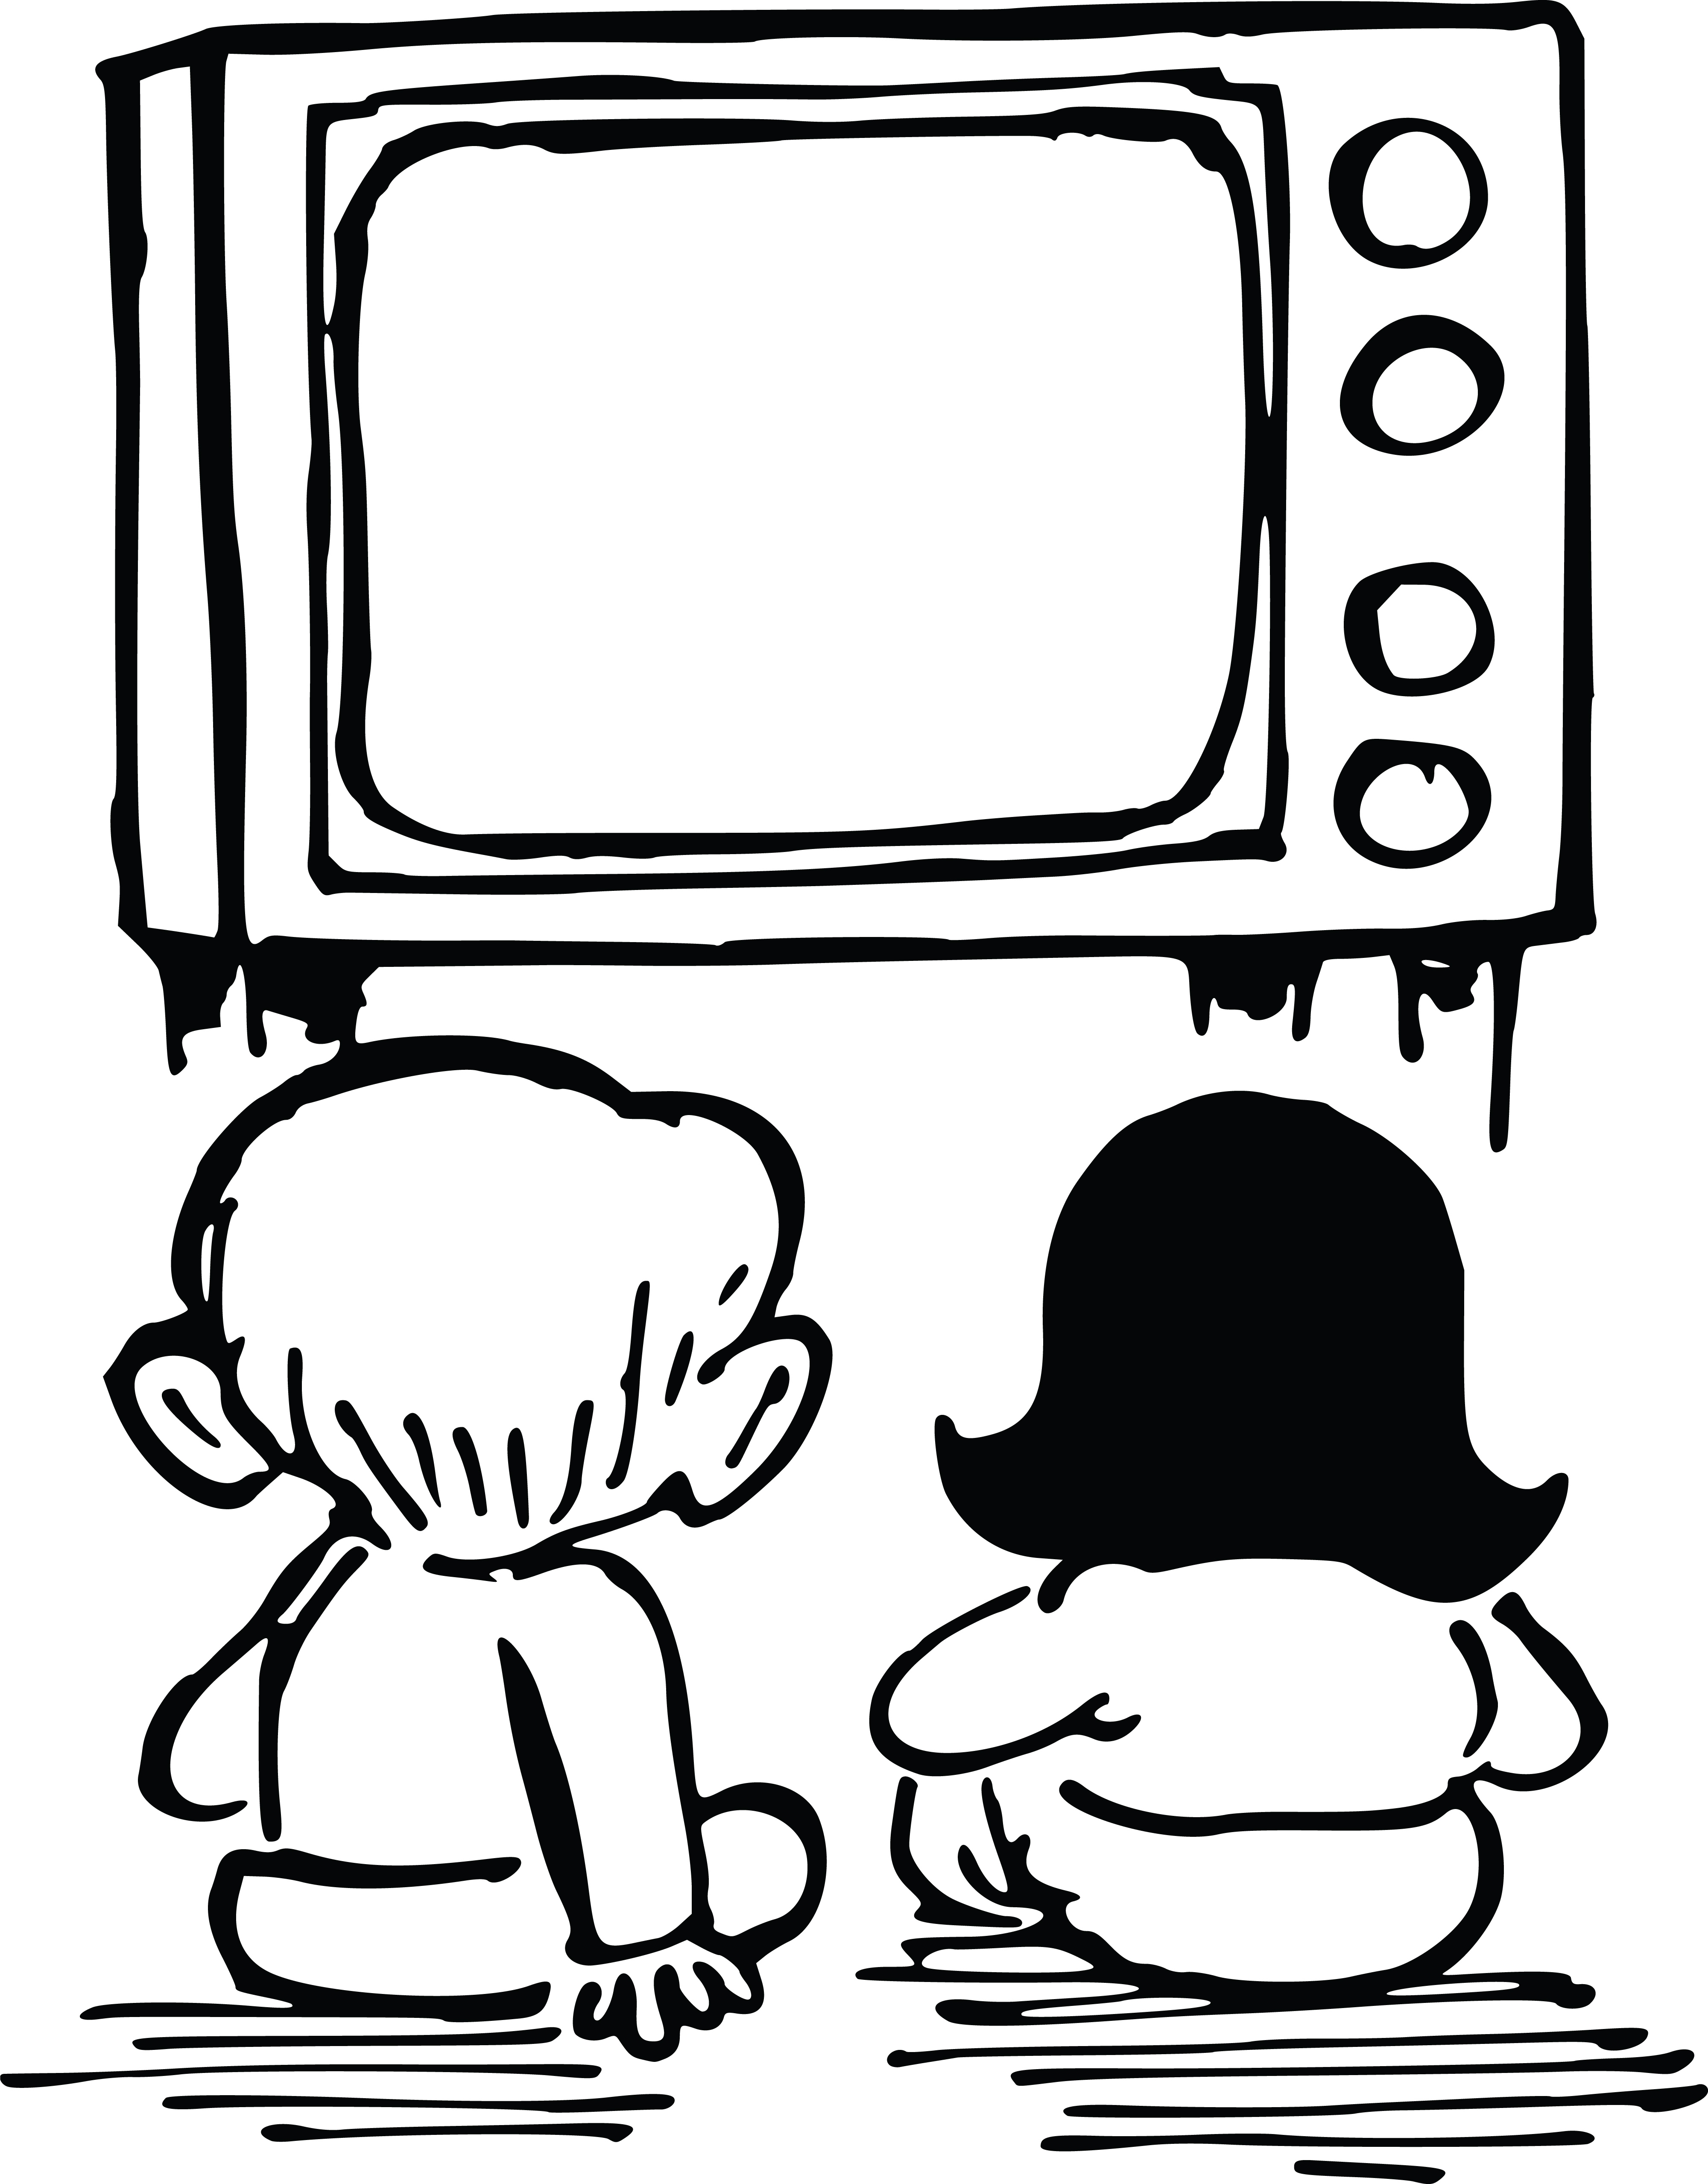 watch tv clipart silhouette